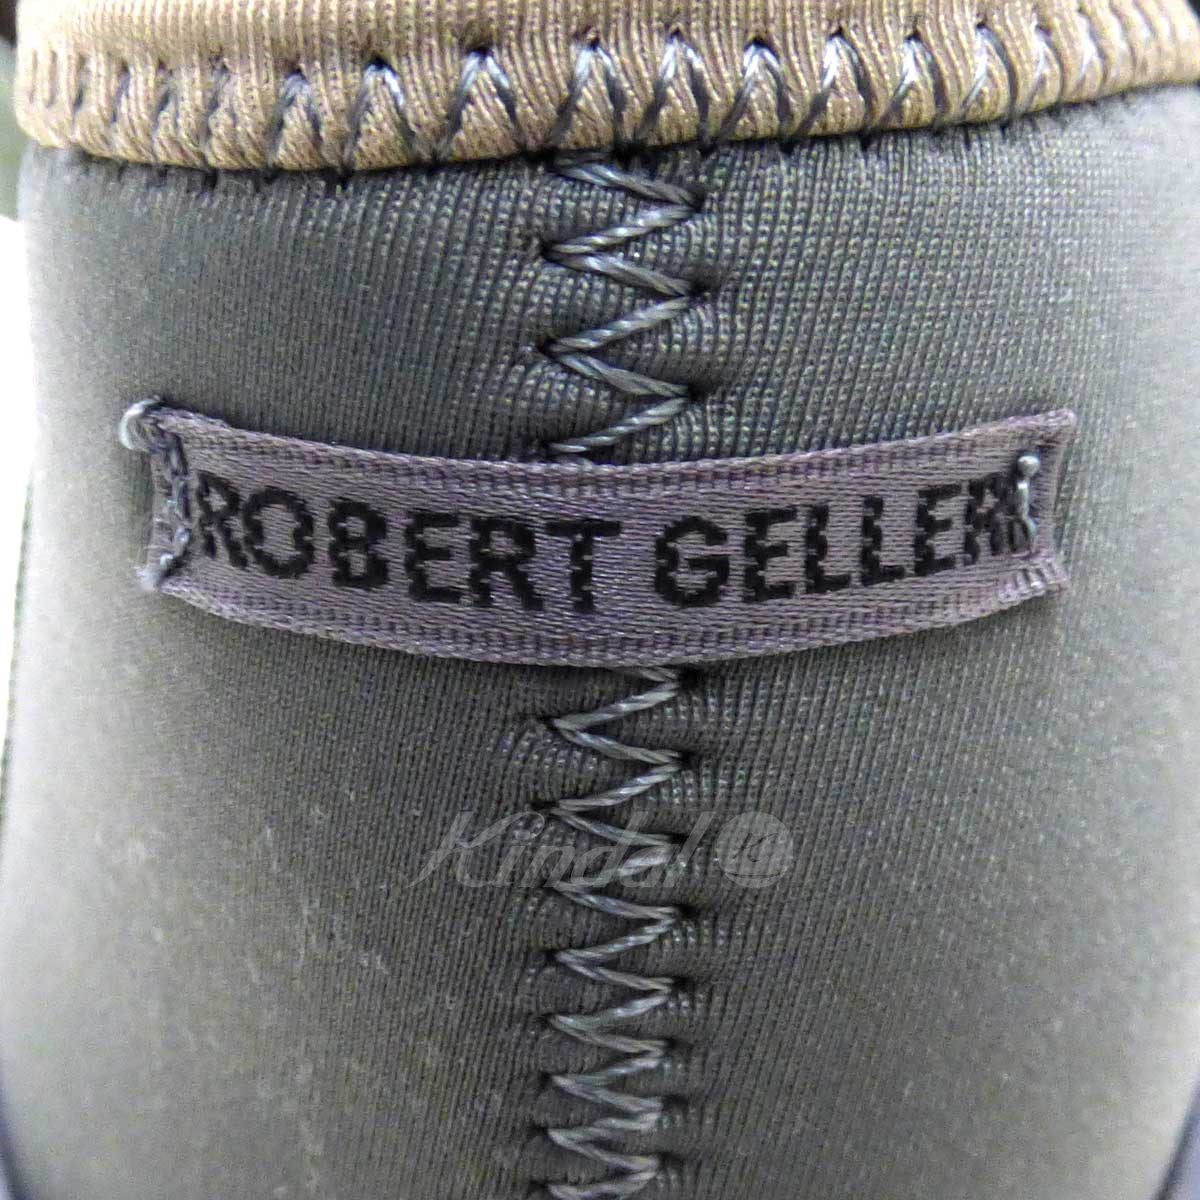 712448d014 ... Suicoke ROBERT GELLER collaboration sandals Vibram sole gray size: US10  (Sui cook)